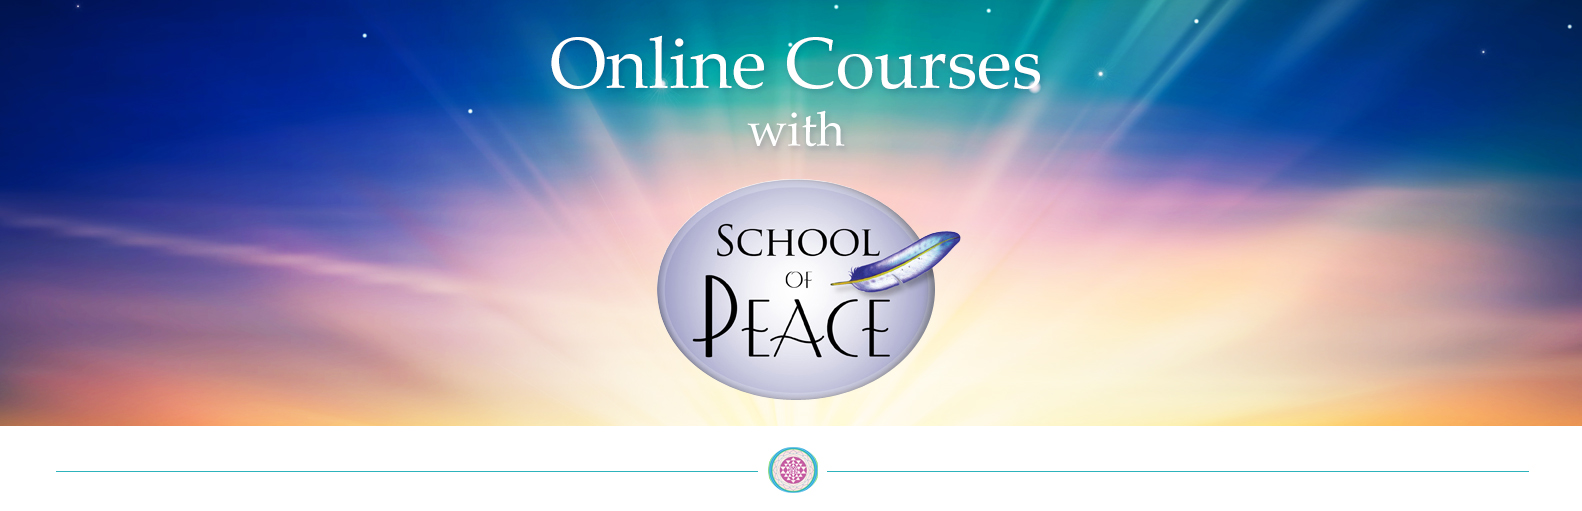 the school of peace online classes